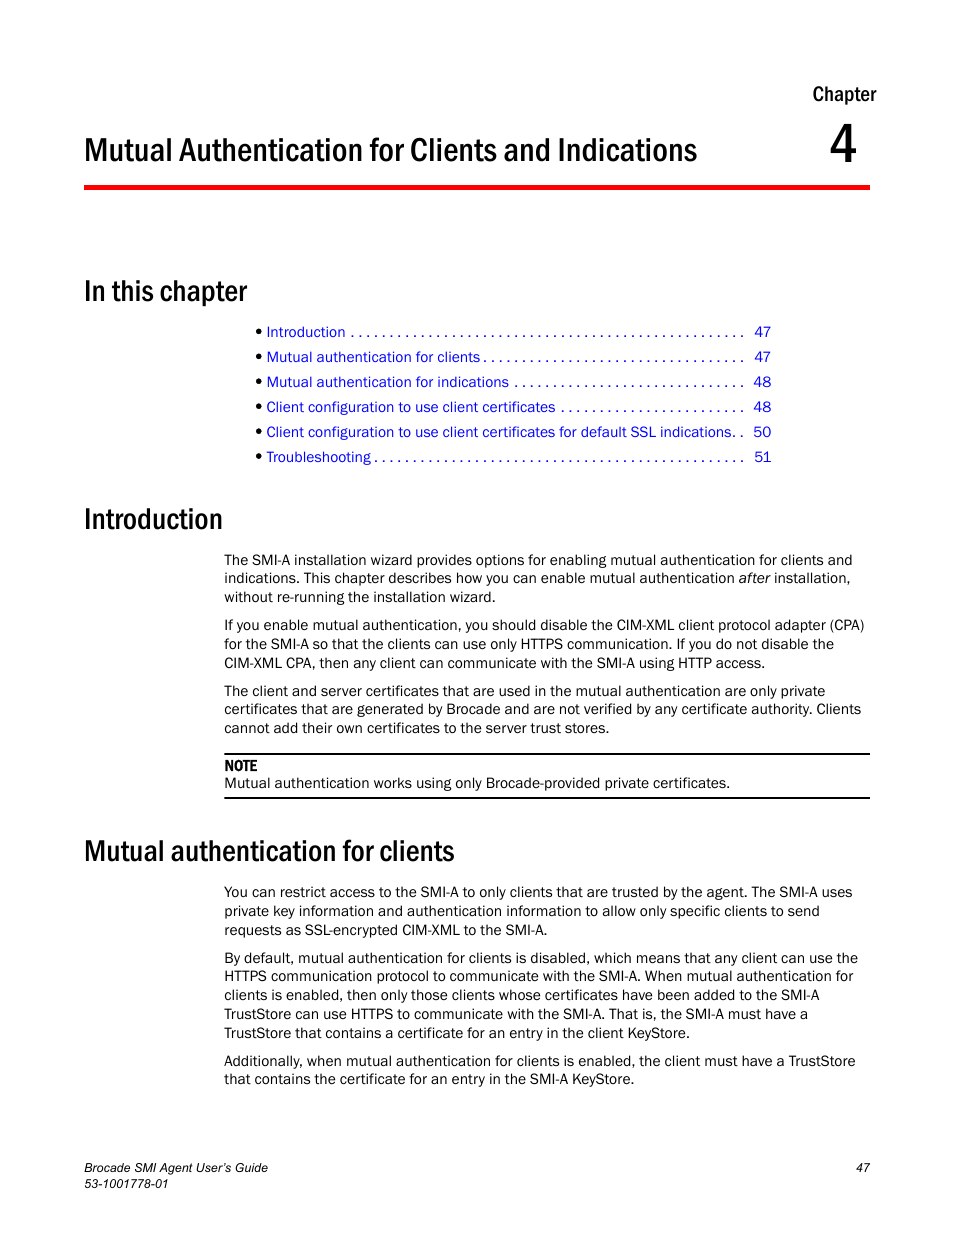 Mutual Authentication For Clients And Indications In This Chapter